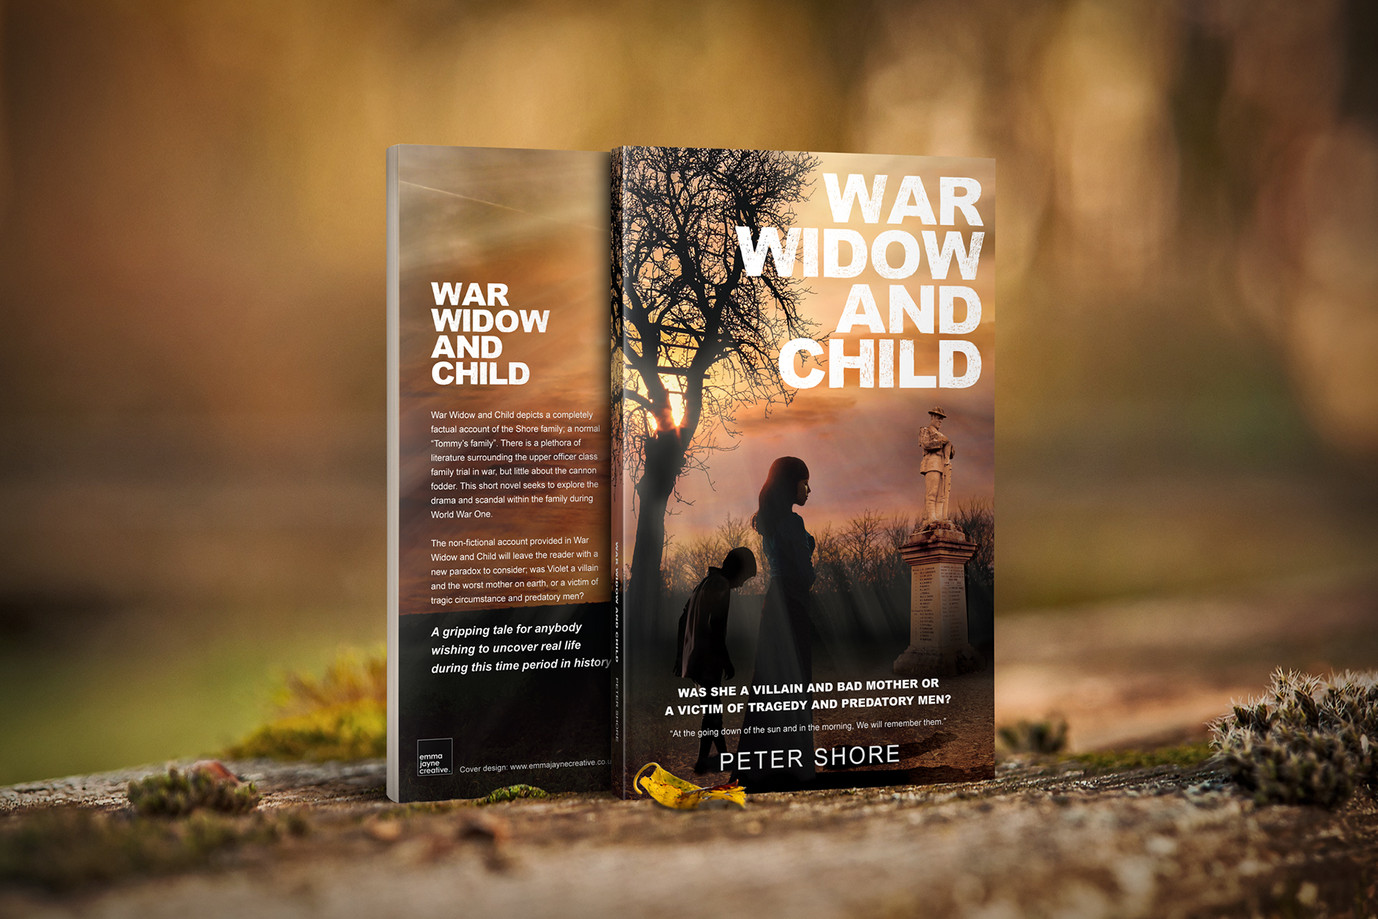 Book Cover for War Widow and Child